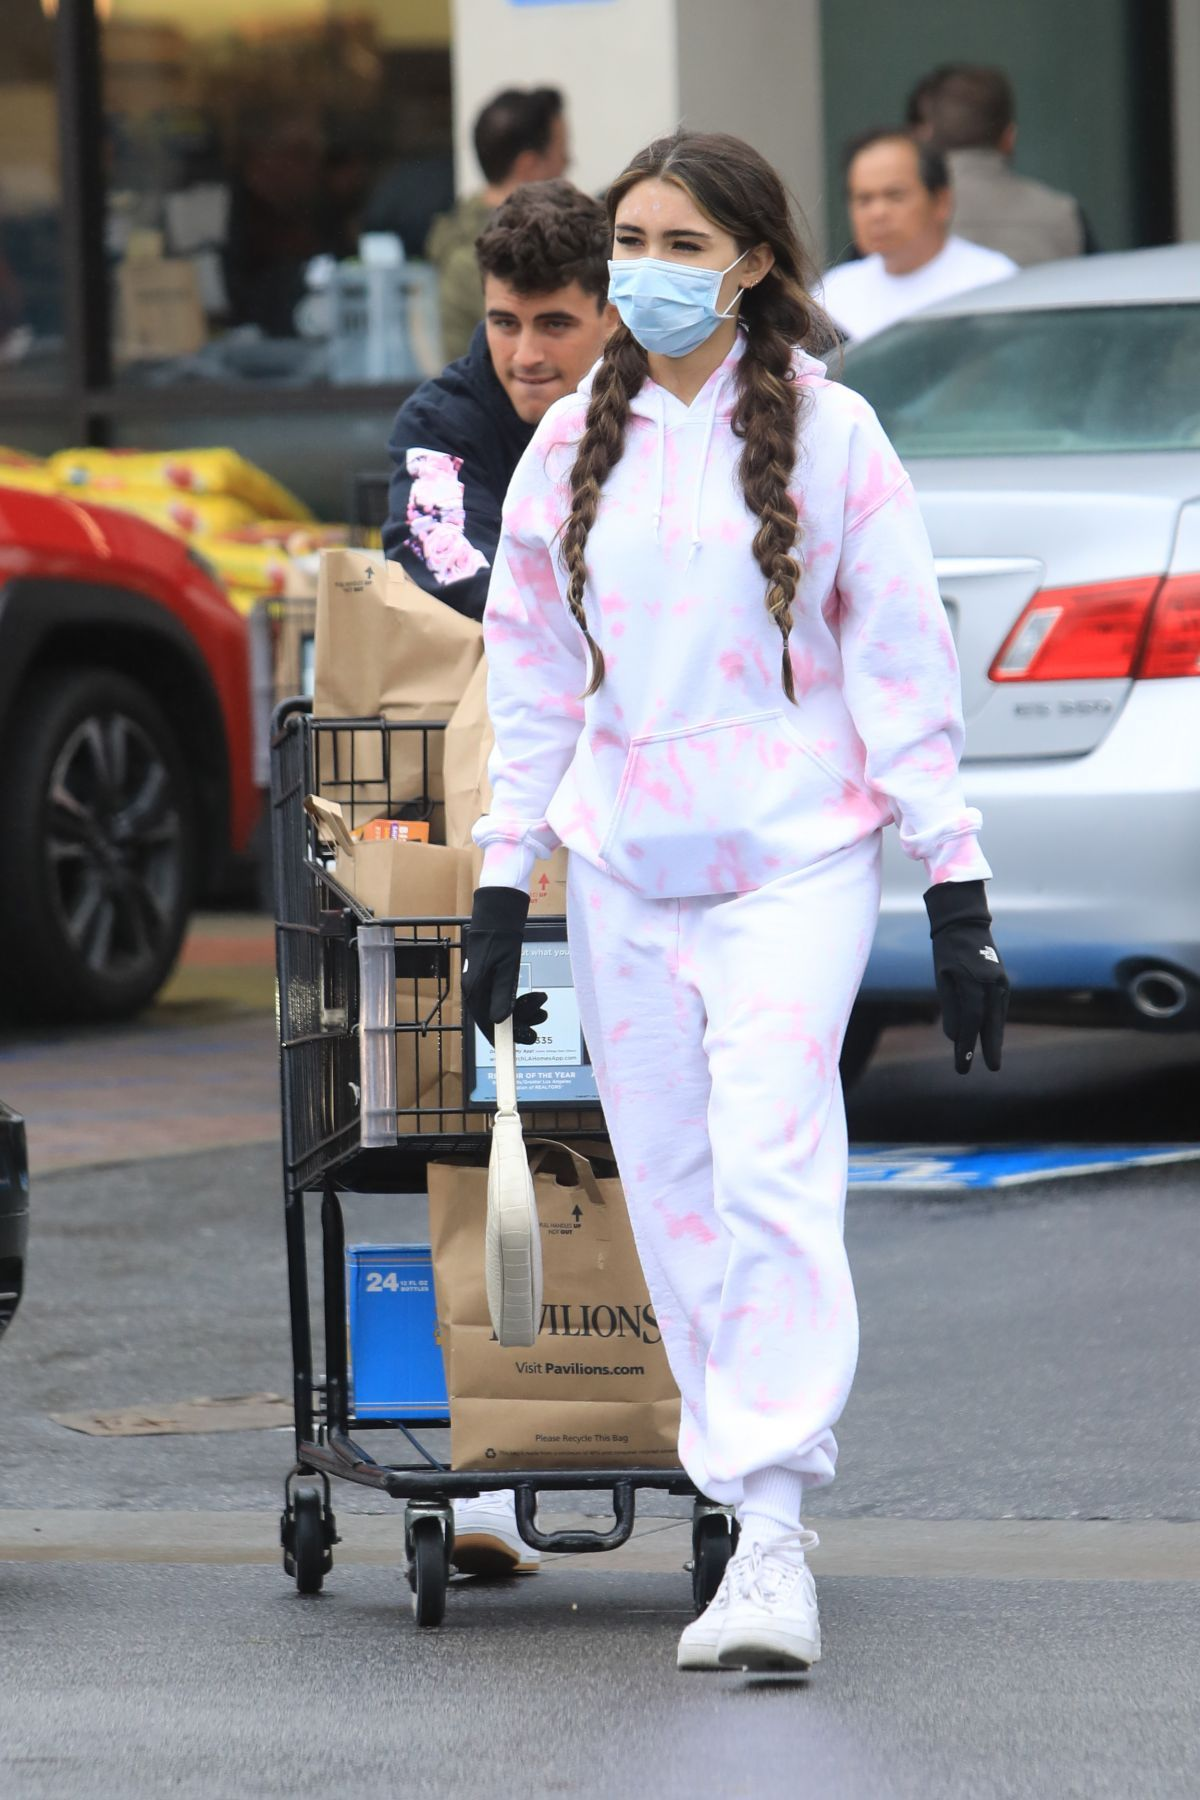 Madison Beer Wears Surgical Mask Out Shopping in Los Angeles 03/14/2020. #fashion #outfits #celebrityfashion #celebritystyle  #celebritystreetstyle #streetstyle #streetfashion #models #hollywood #hollywoodlife